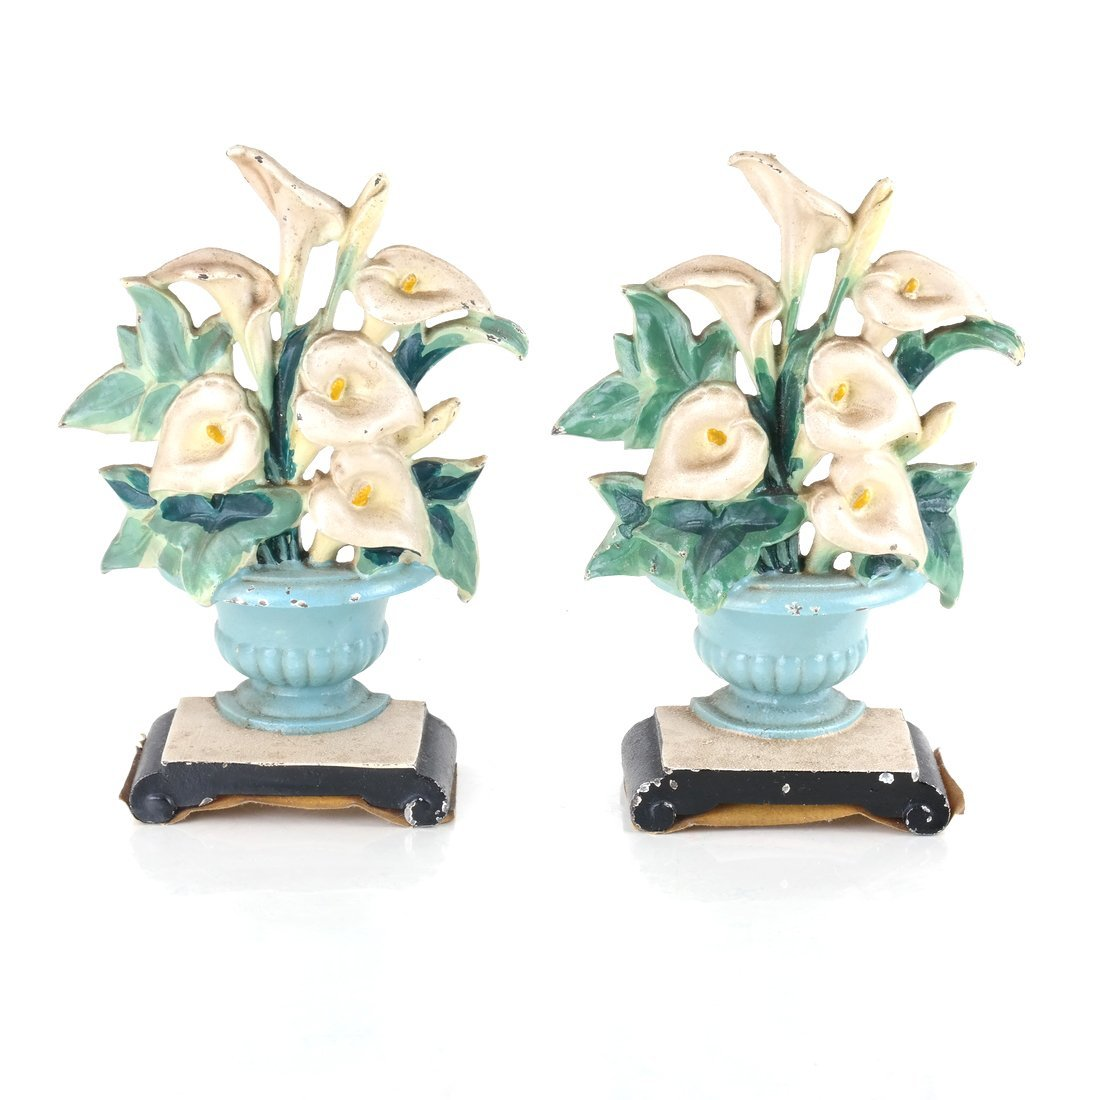 Two Identical Cast Iron Lilies in Urns Doorstops